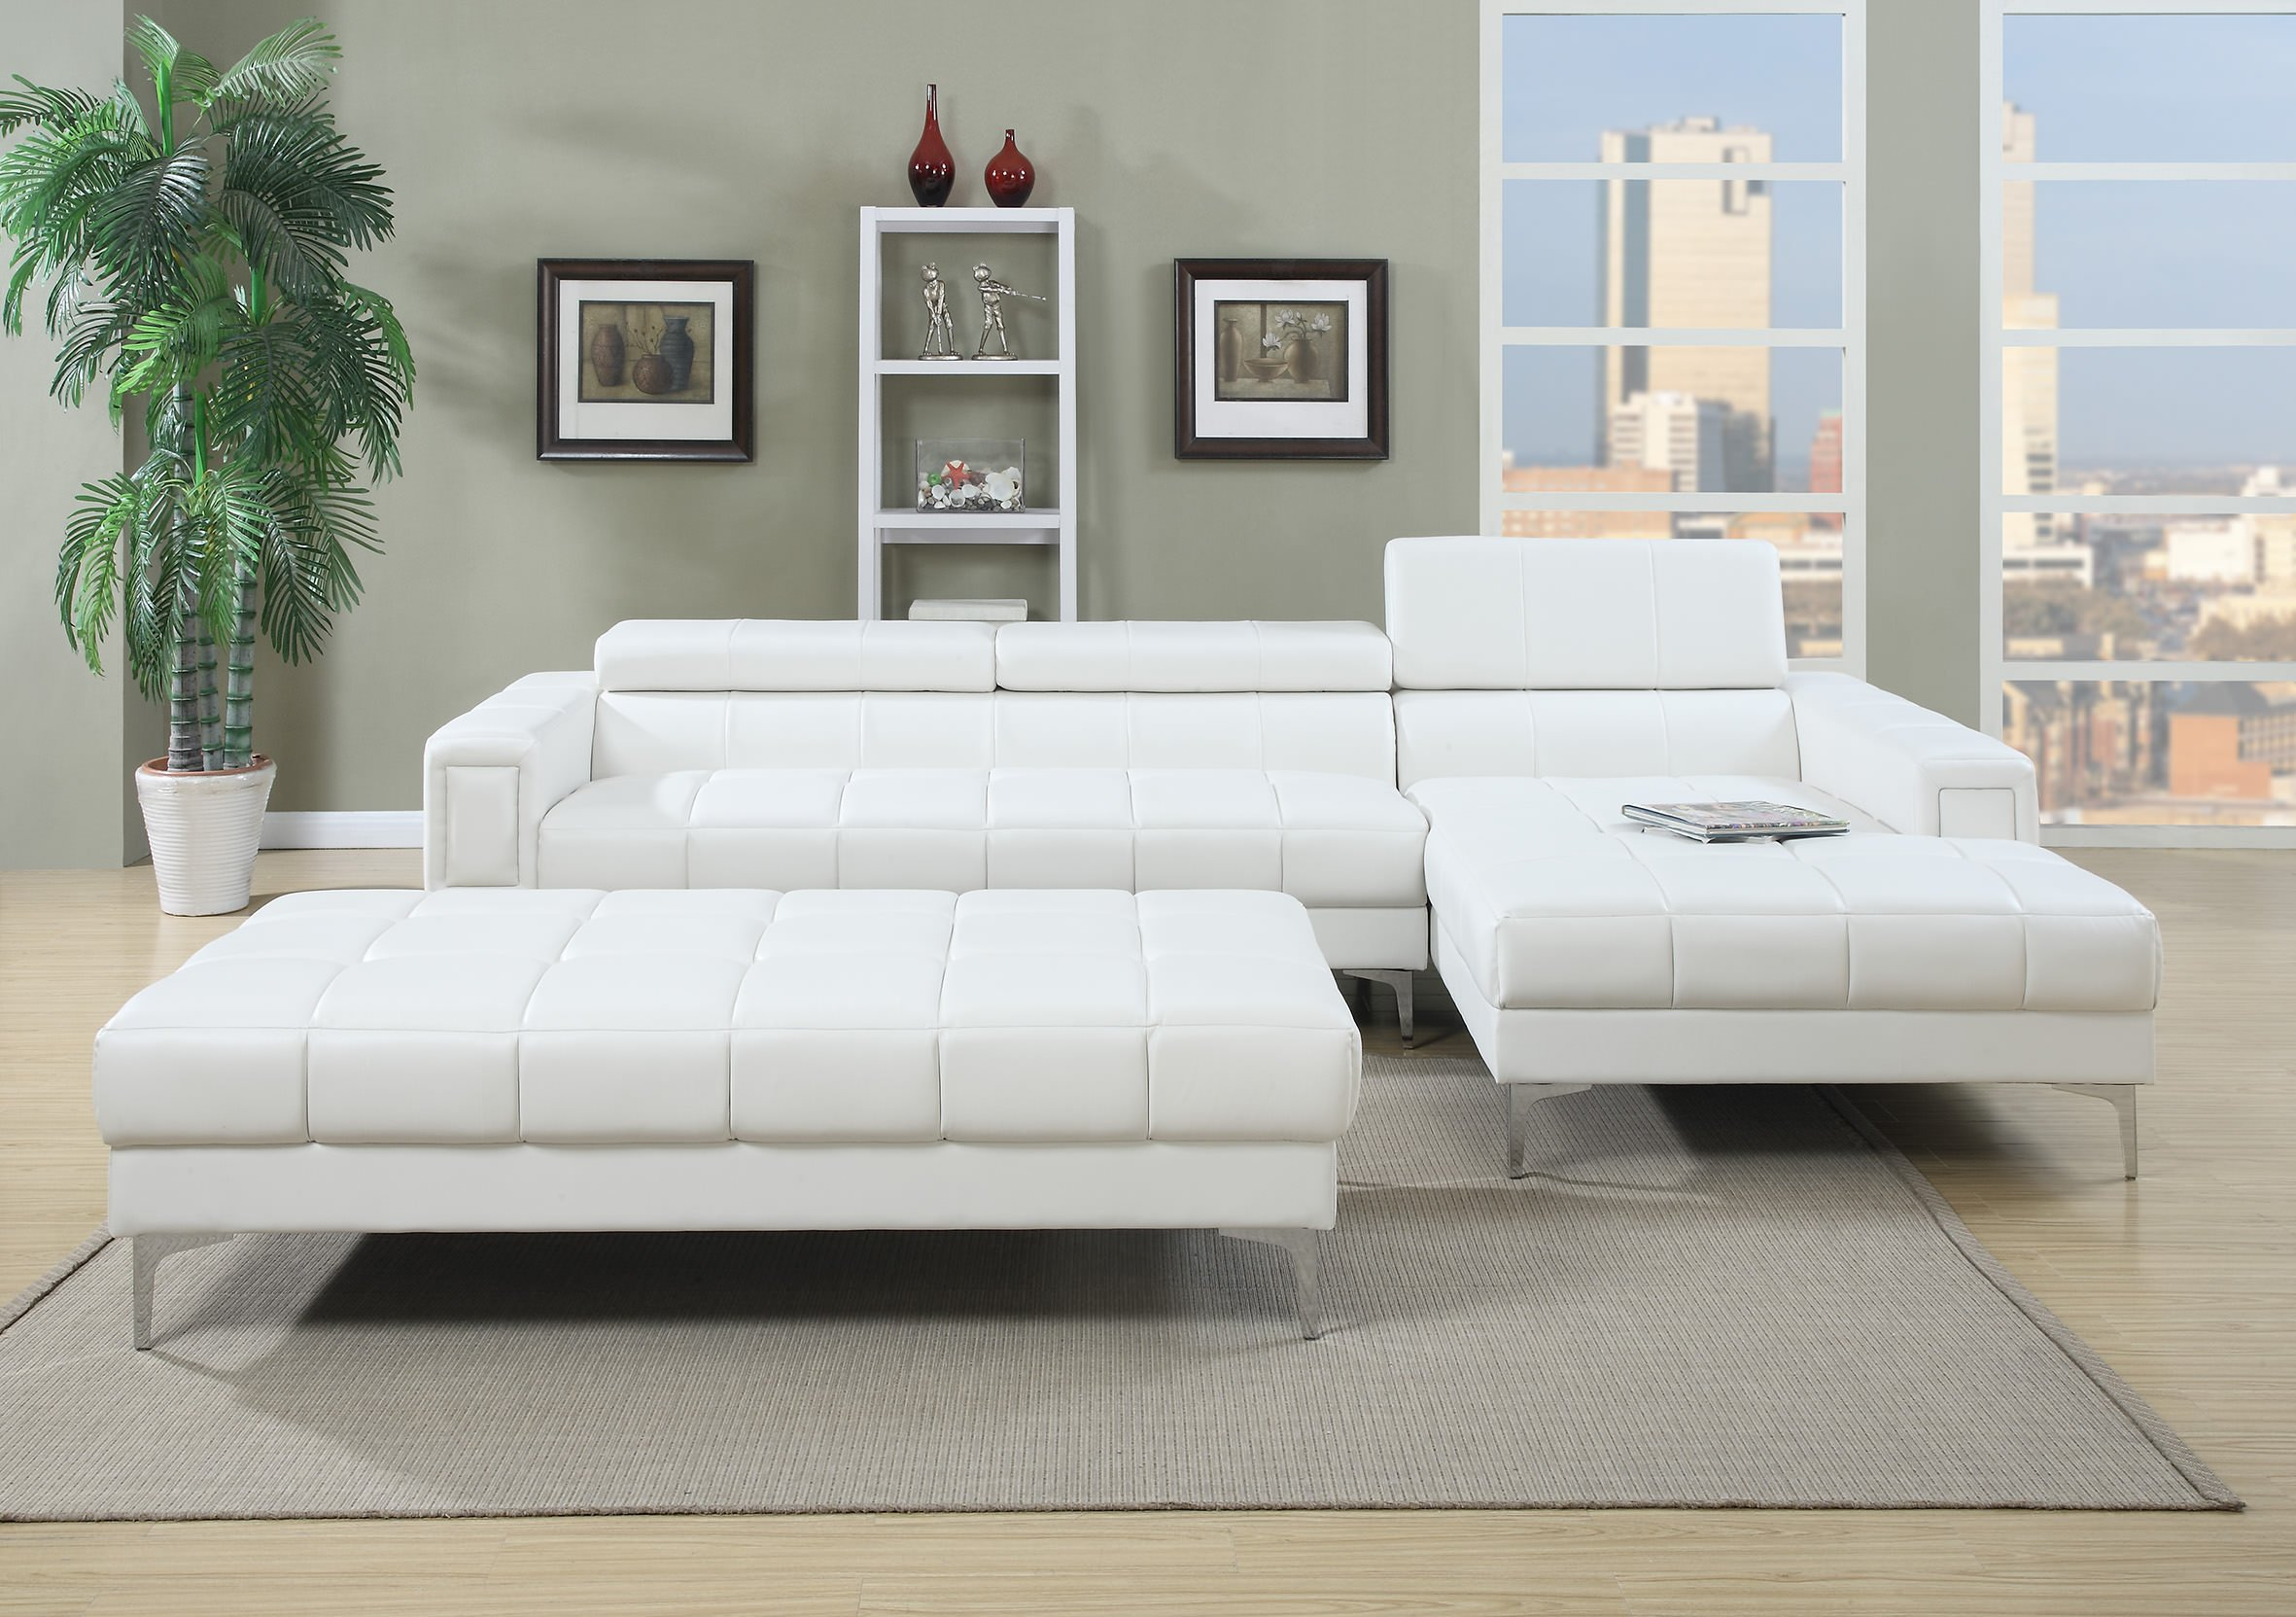 Prime F7364 White 2 Pcs Sectional Sofa By Poundex Inzonedesignstudio Interior Chair Design Inzonedesignstudiocom